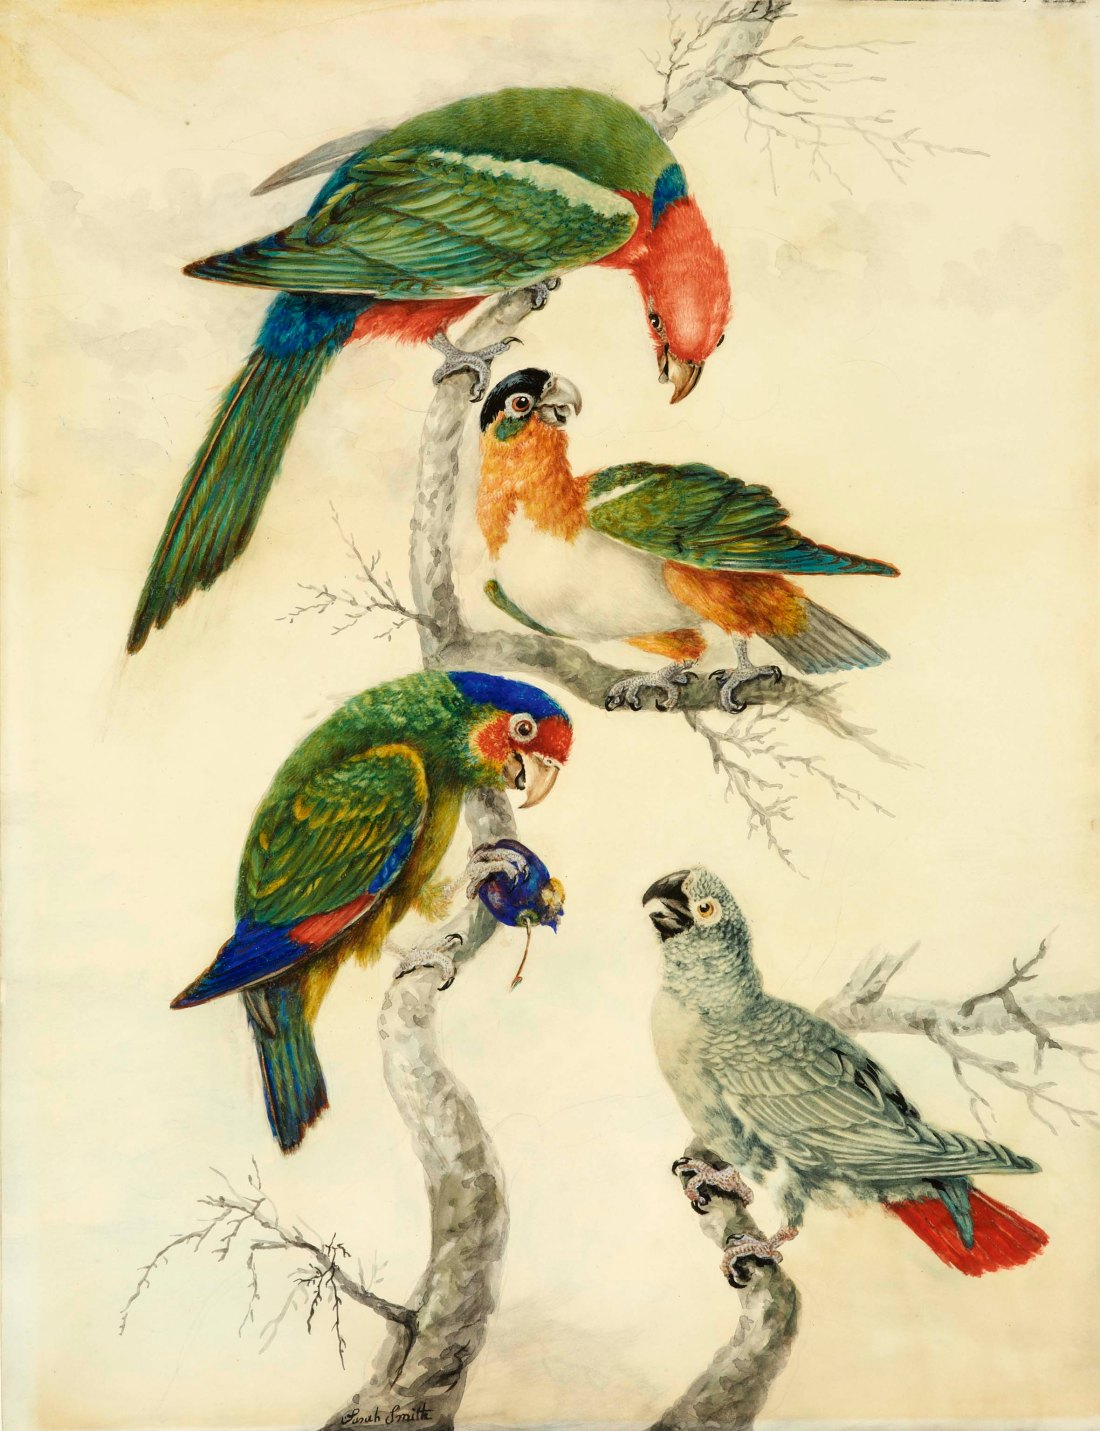 Four Parrots on a Branch, a watercolor painted by Sarah Stone in 1789 or 1790.